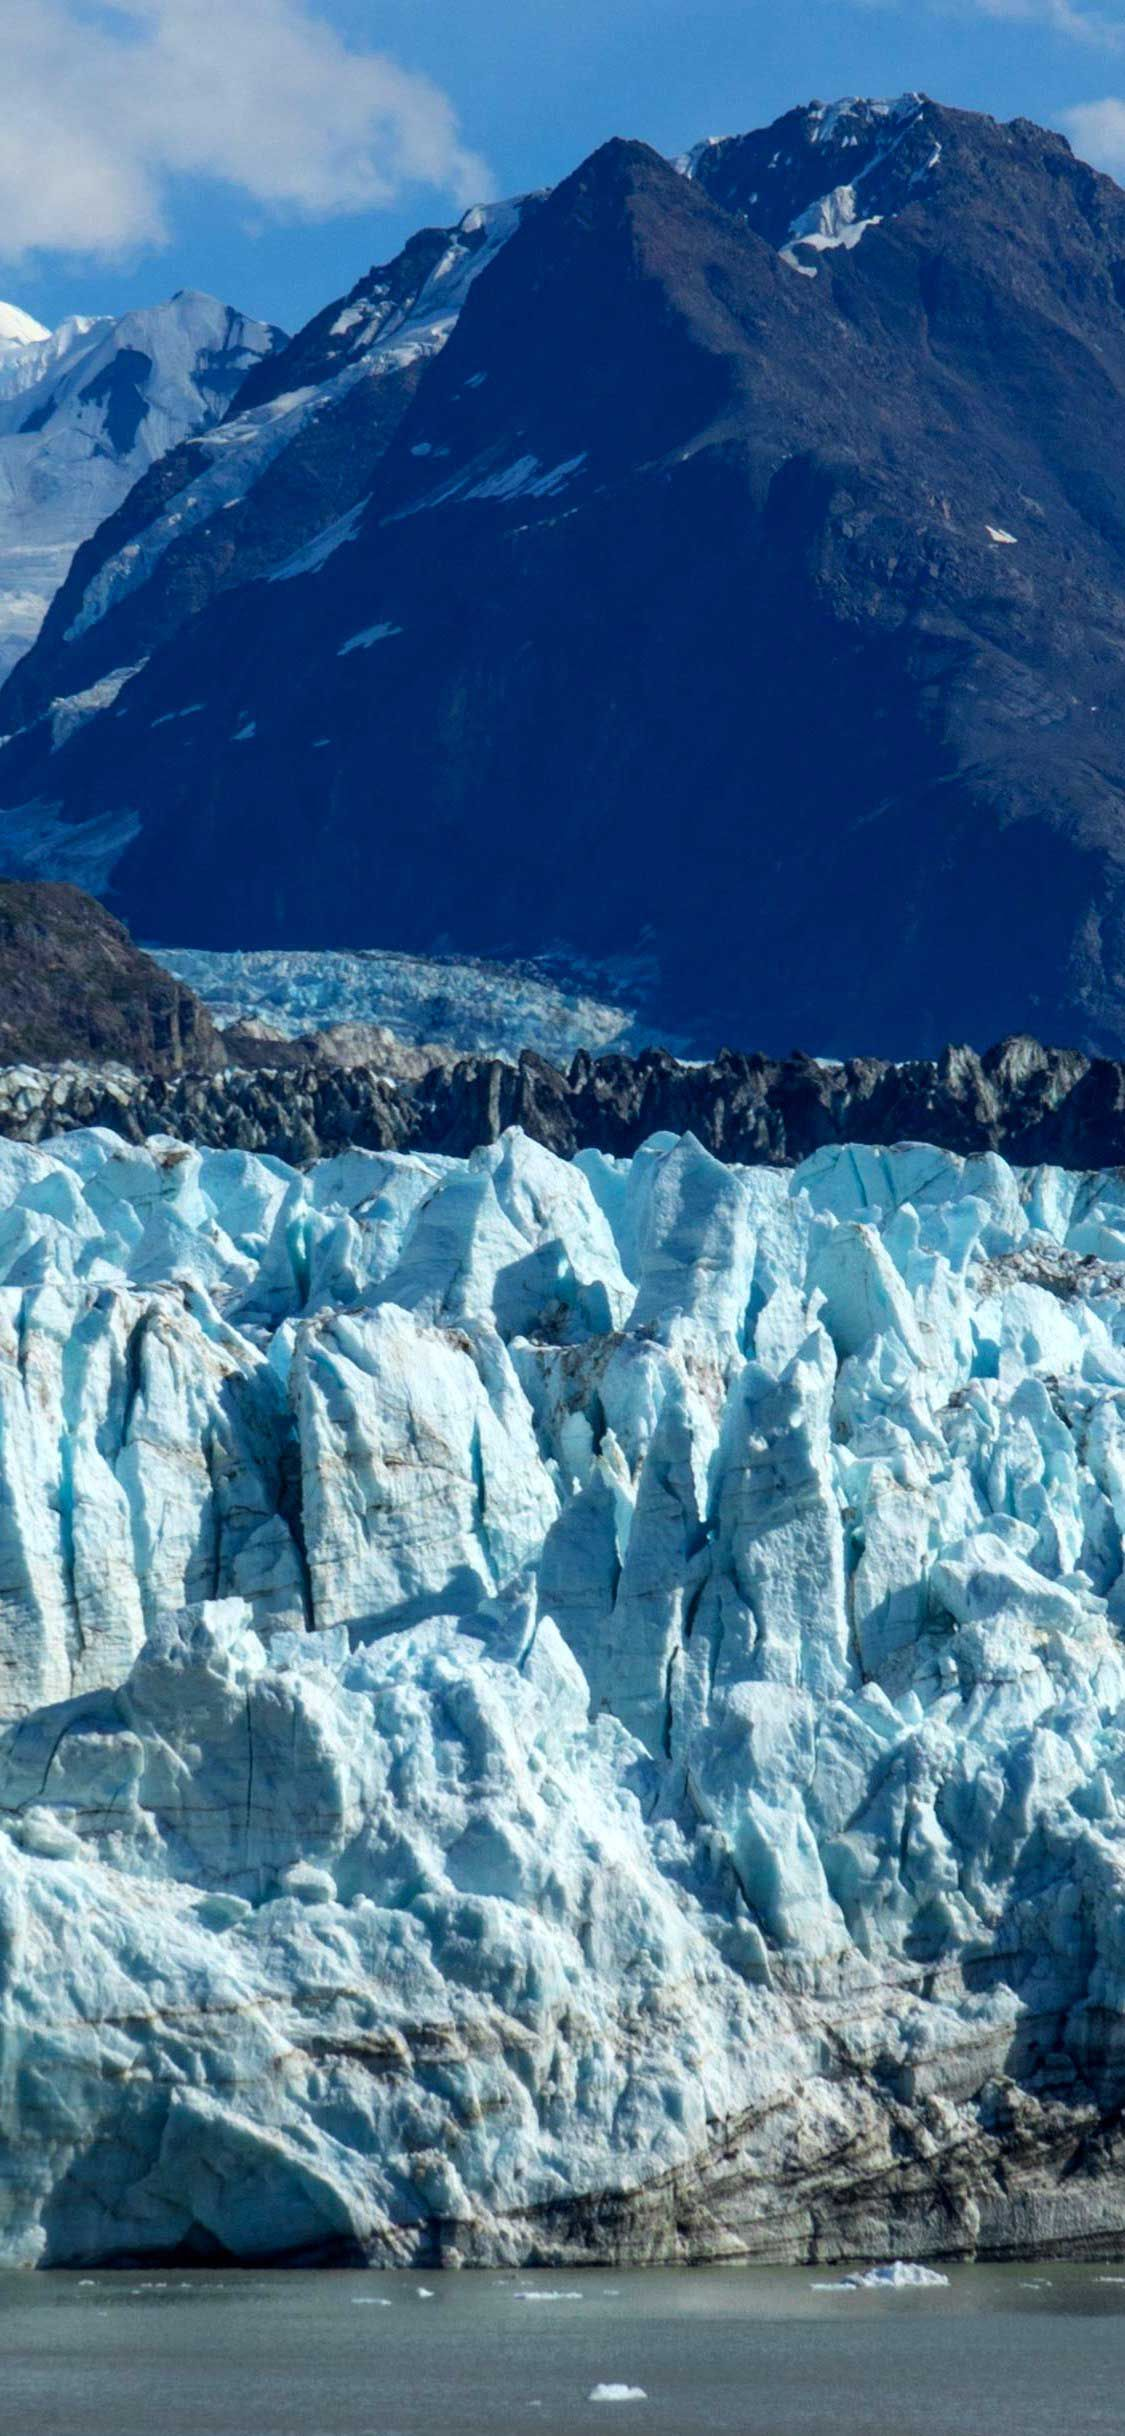 Iphone Pro Wallpaper Alaska mountains ice floes Hd in